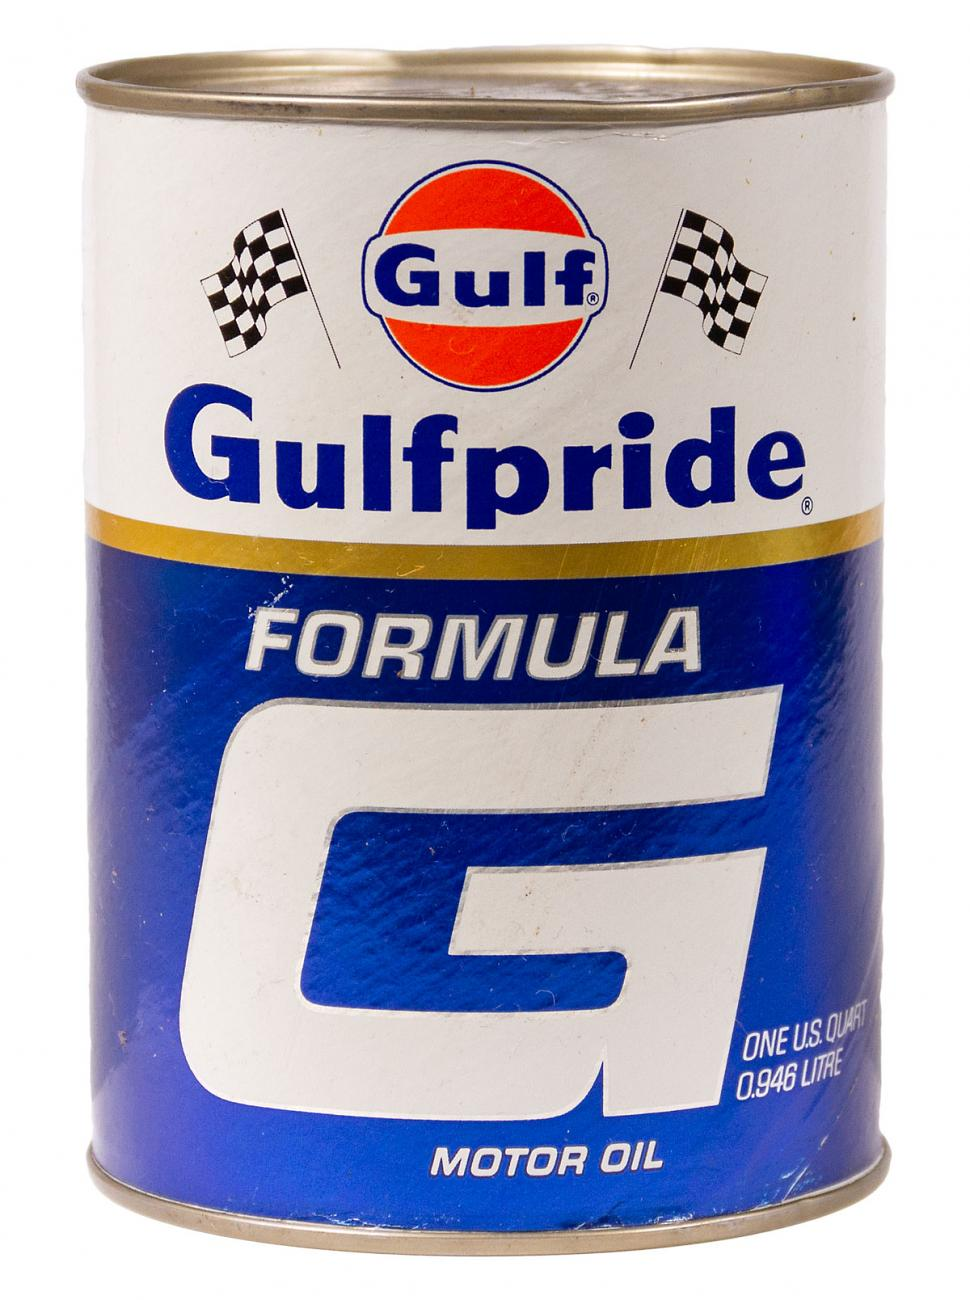 Gulfpride Racing Formula G Composite Oil Cans